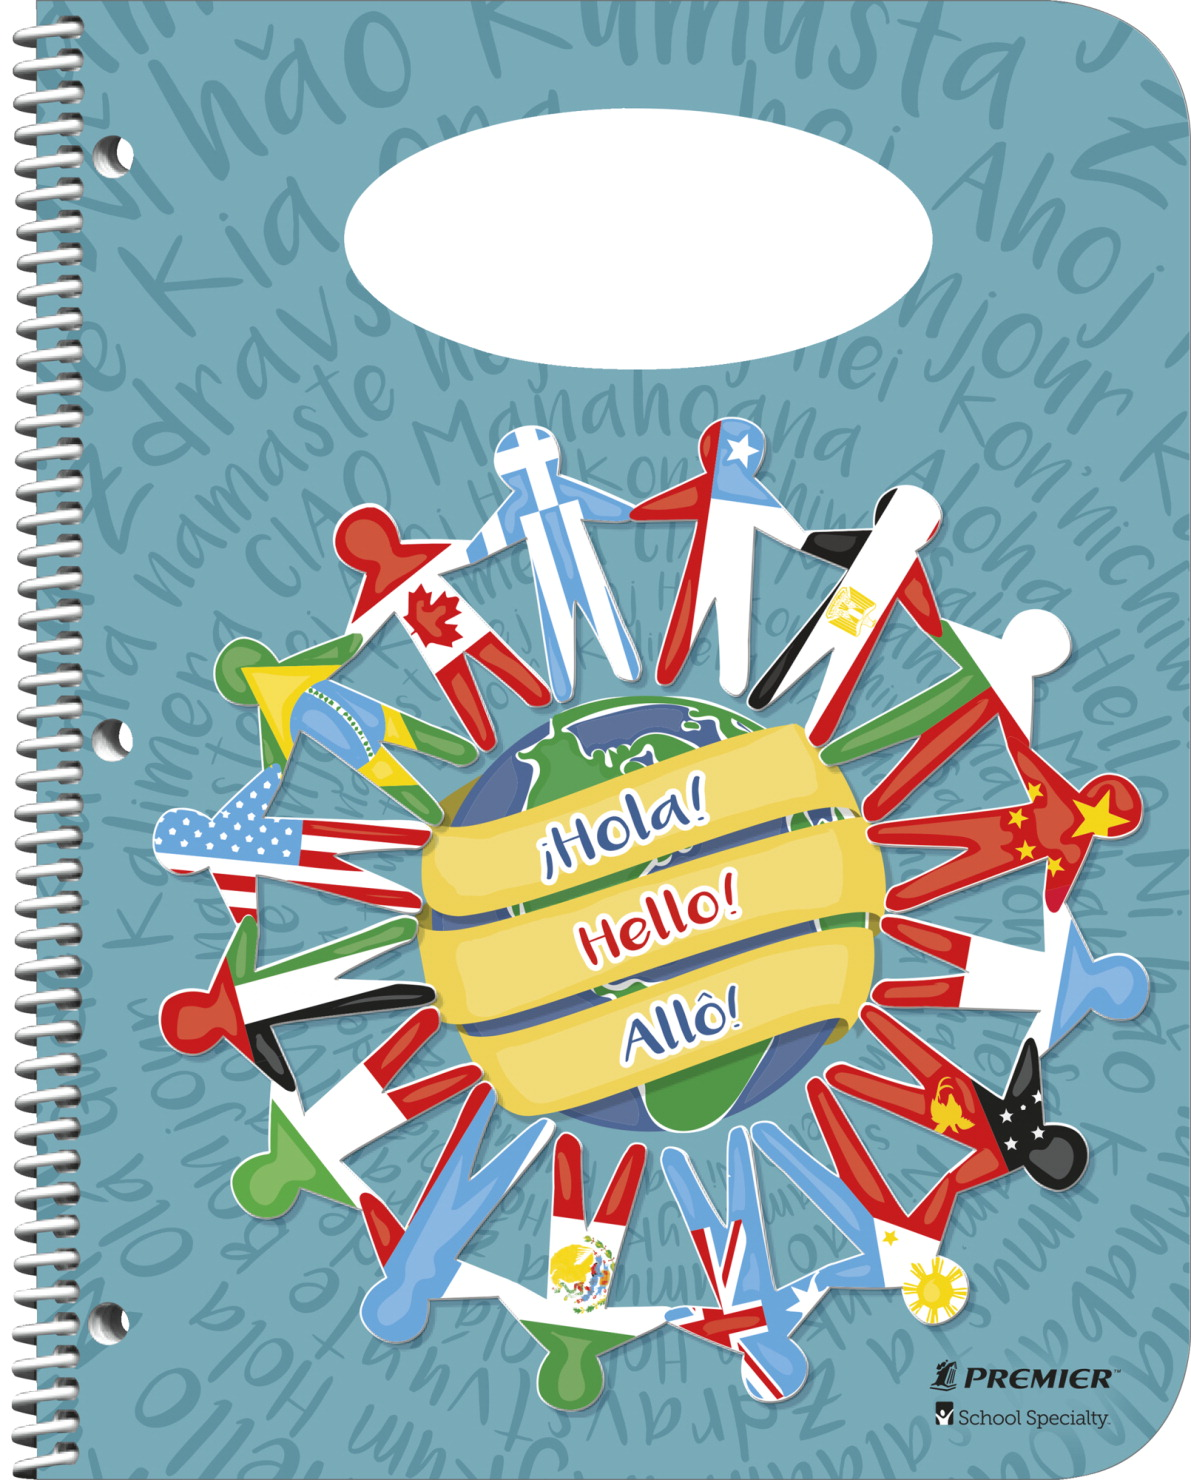 Premier Essential Elementary Middle School Student Planner, 2018 to 2019